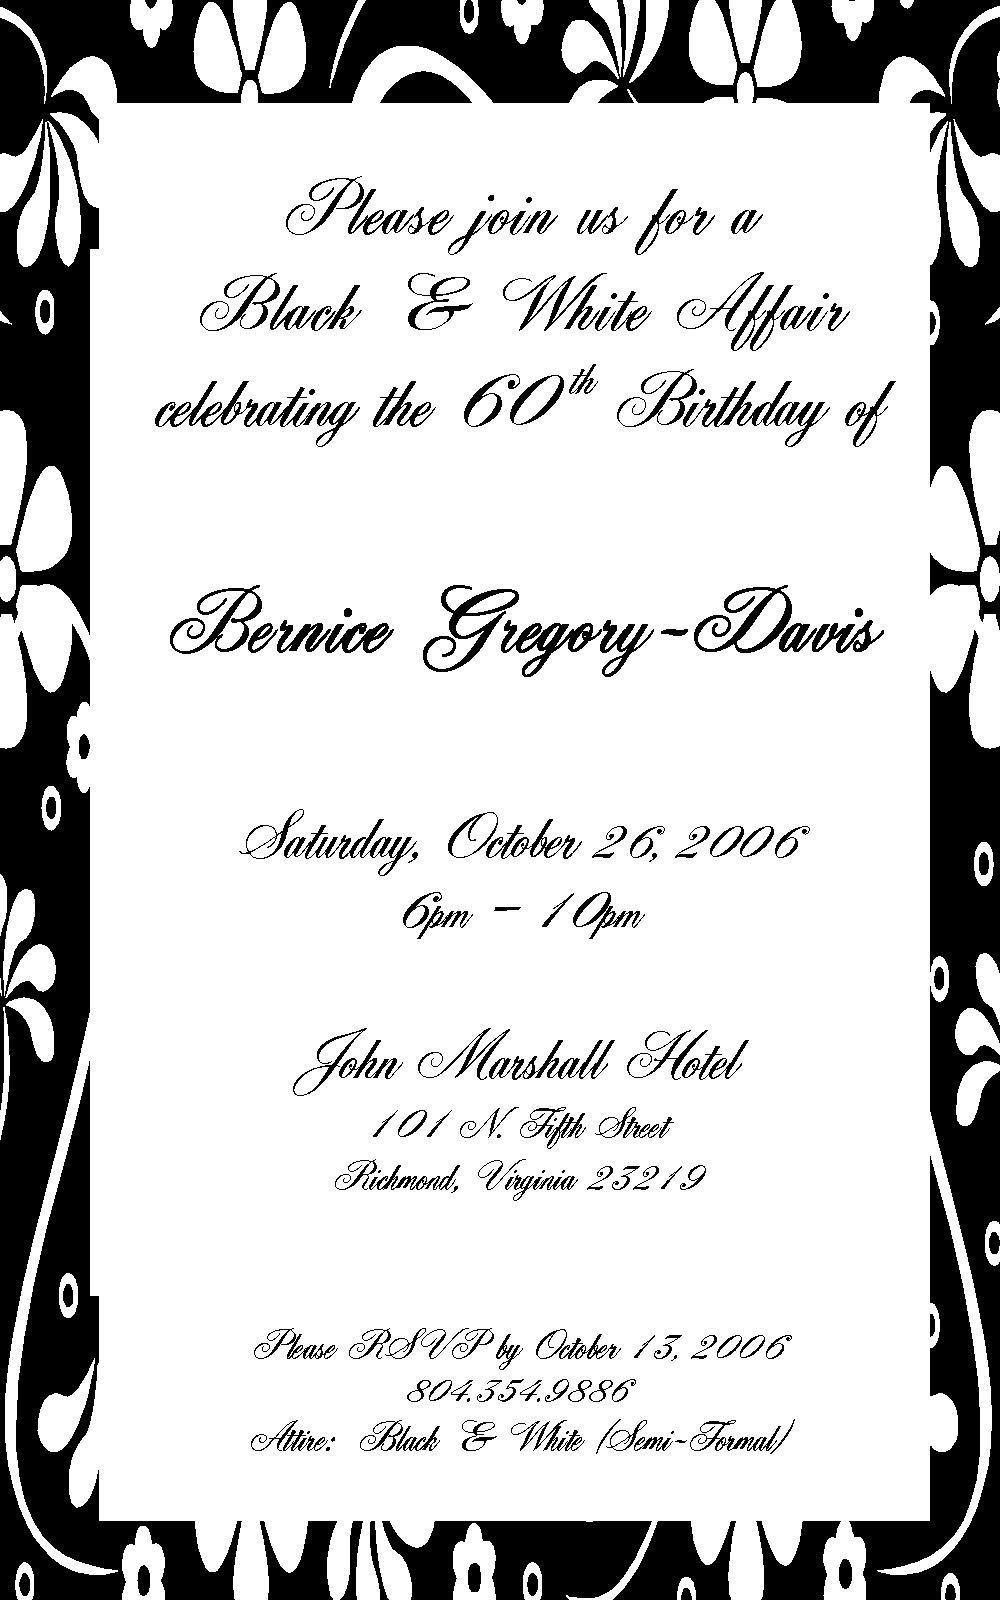 Images For > Birthday Dinner Party Invitation Template | ordination